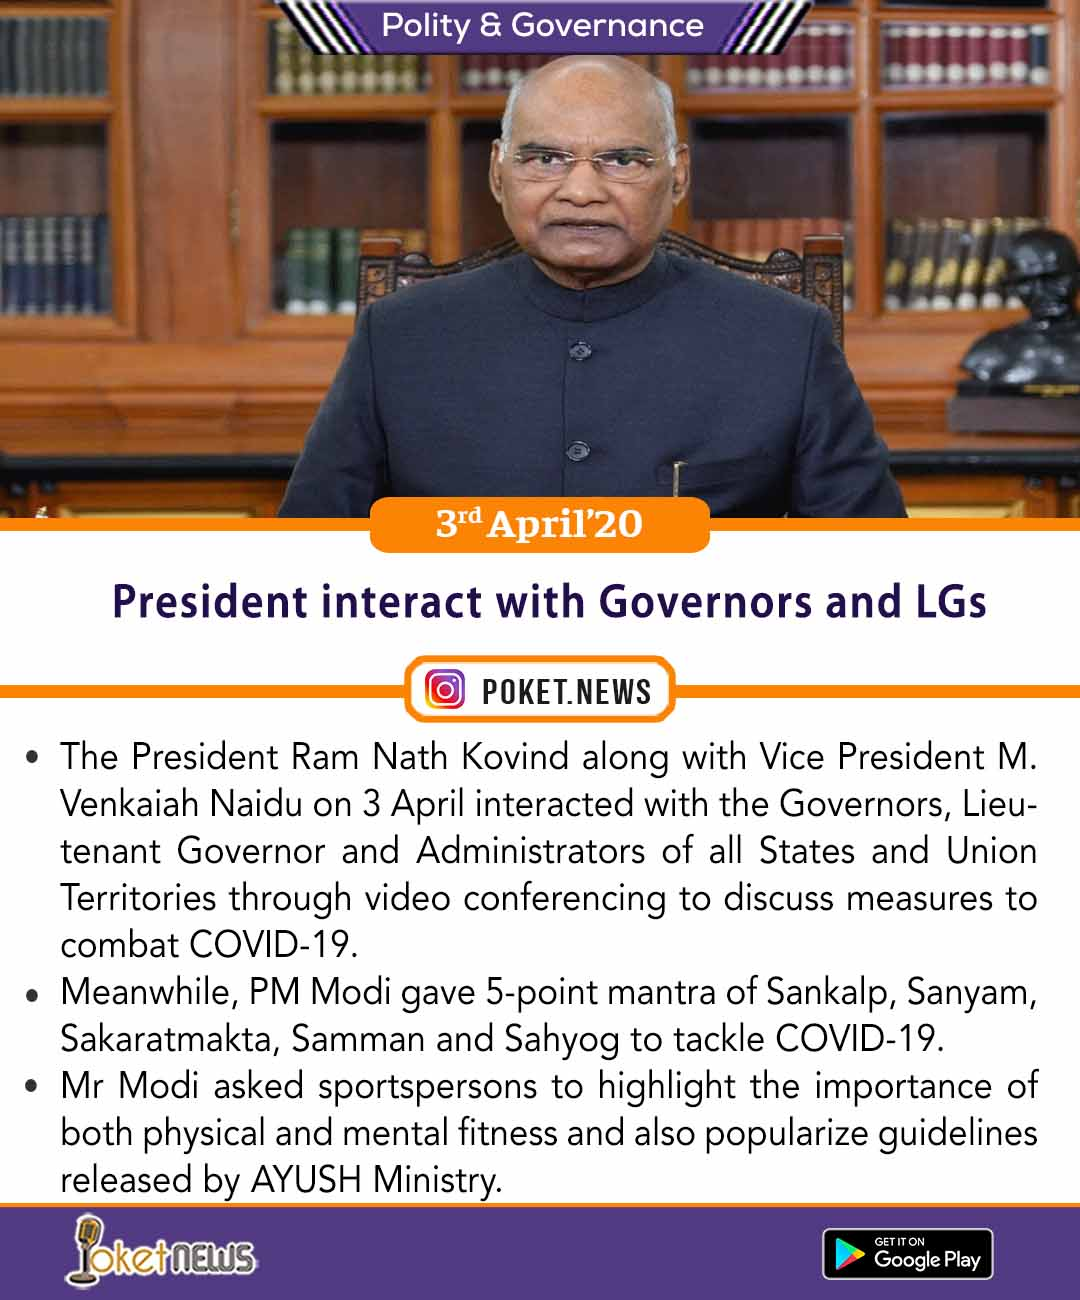 President interact with Governors and LGs